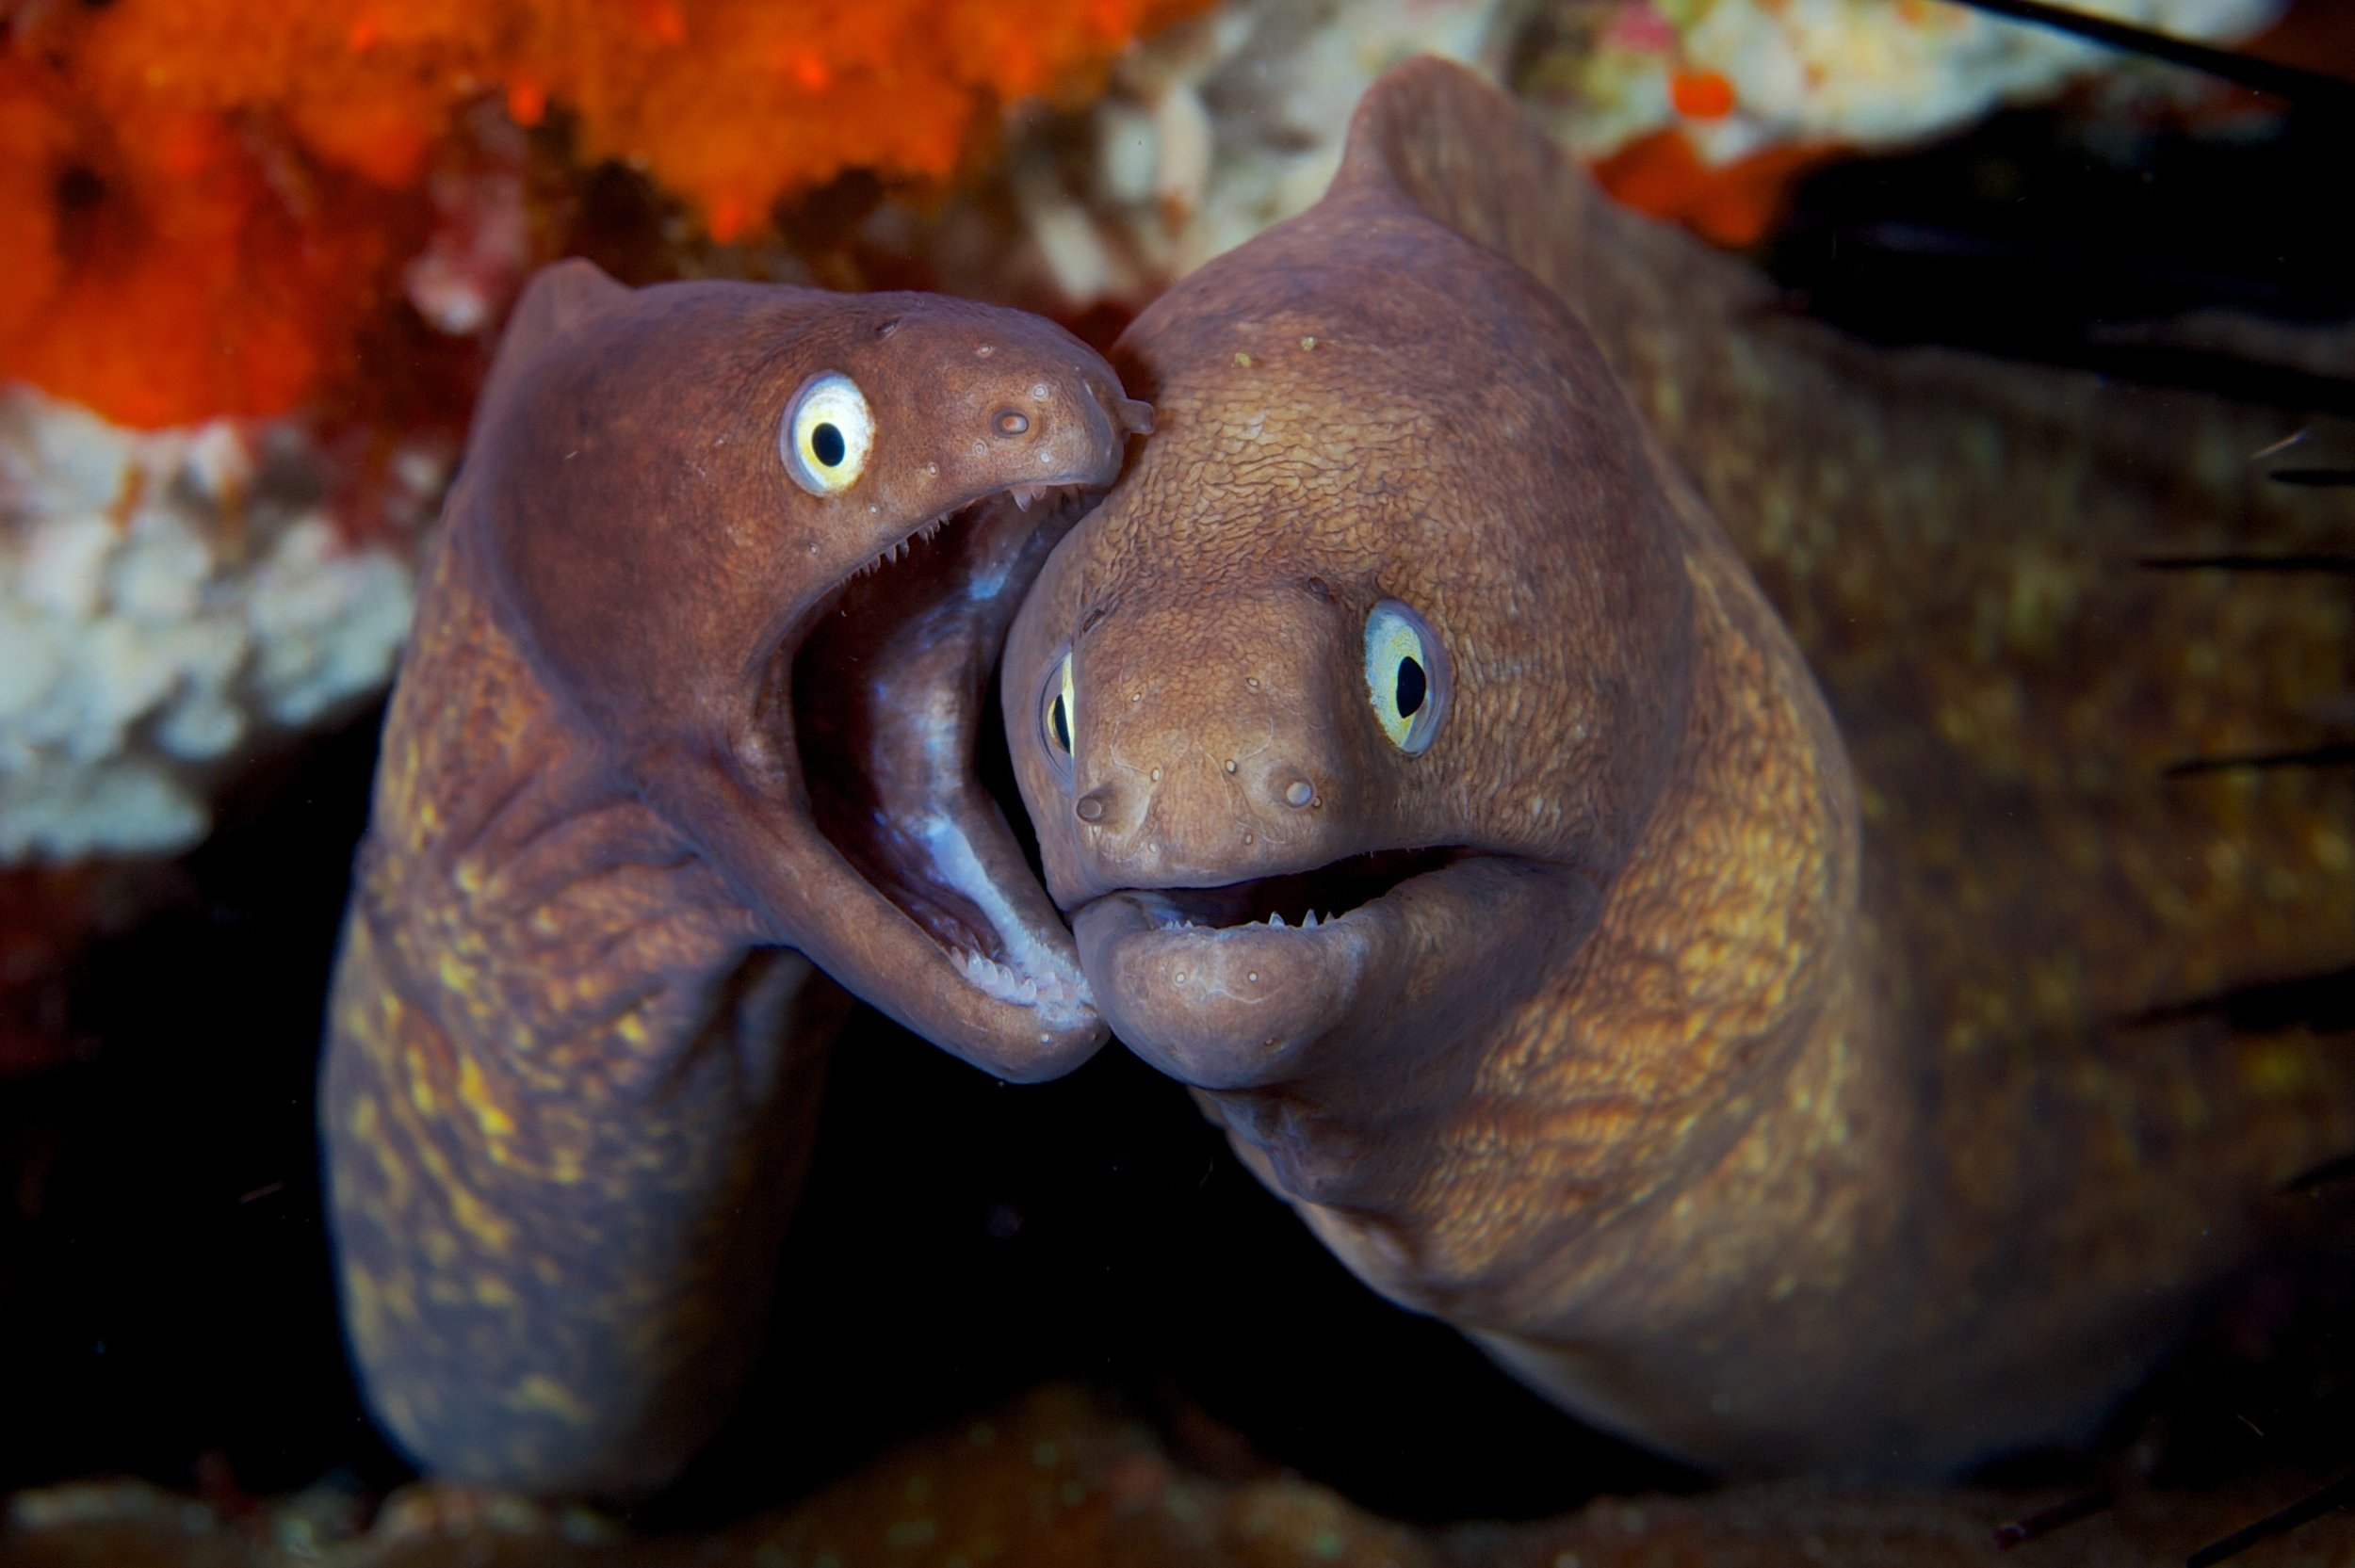 brown morays credit: Gregory piper / coral reef image bank